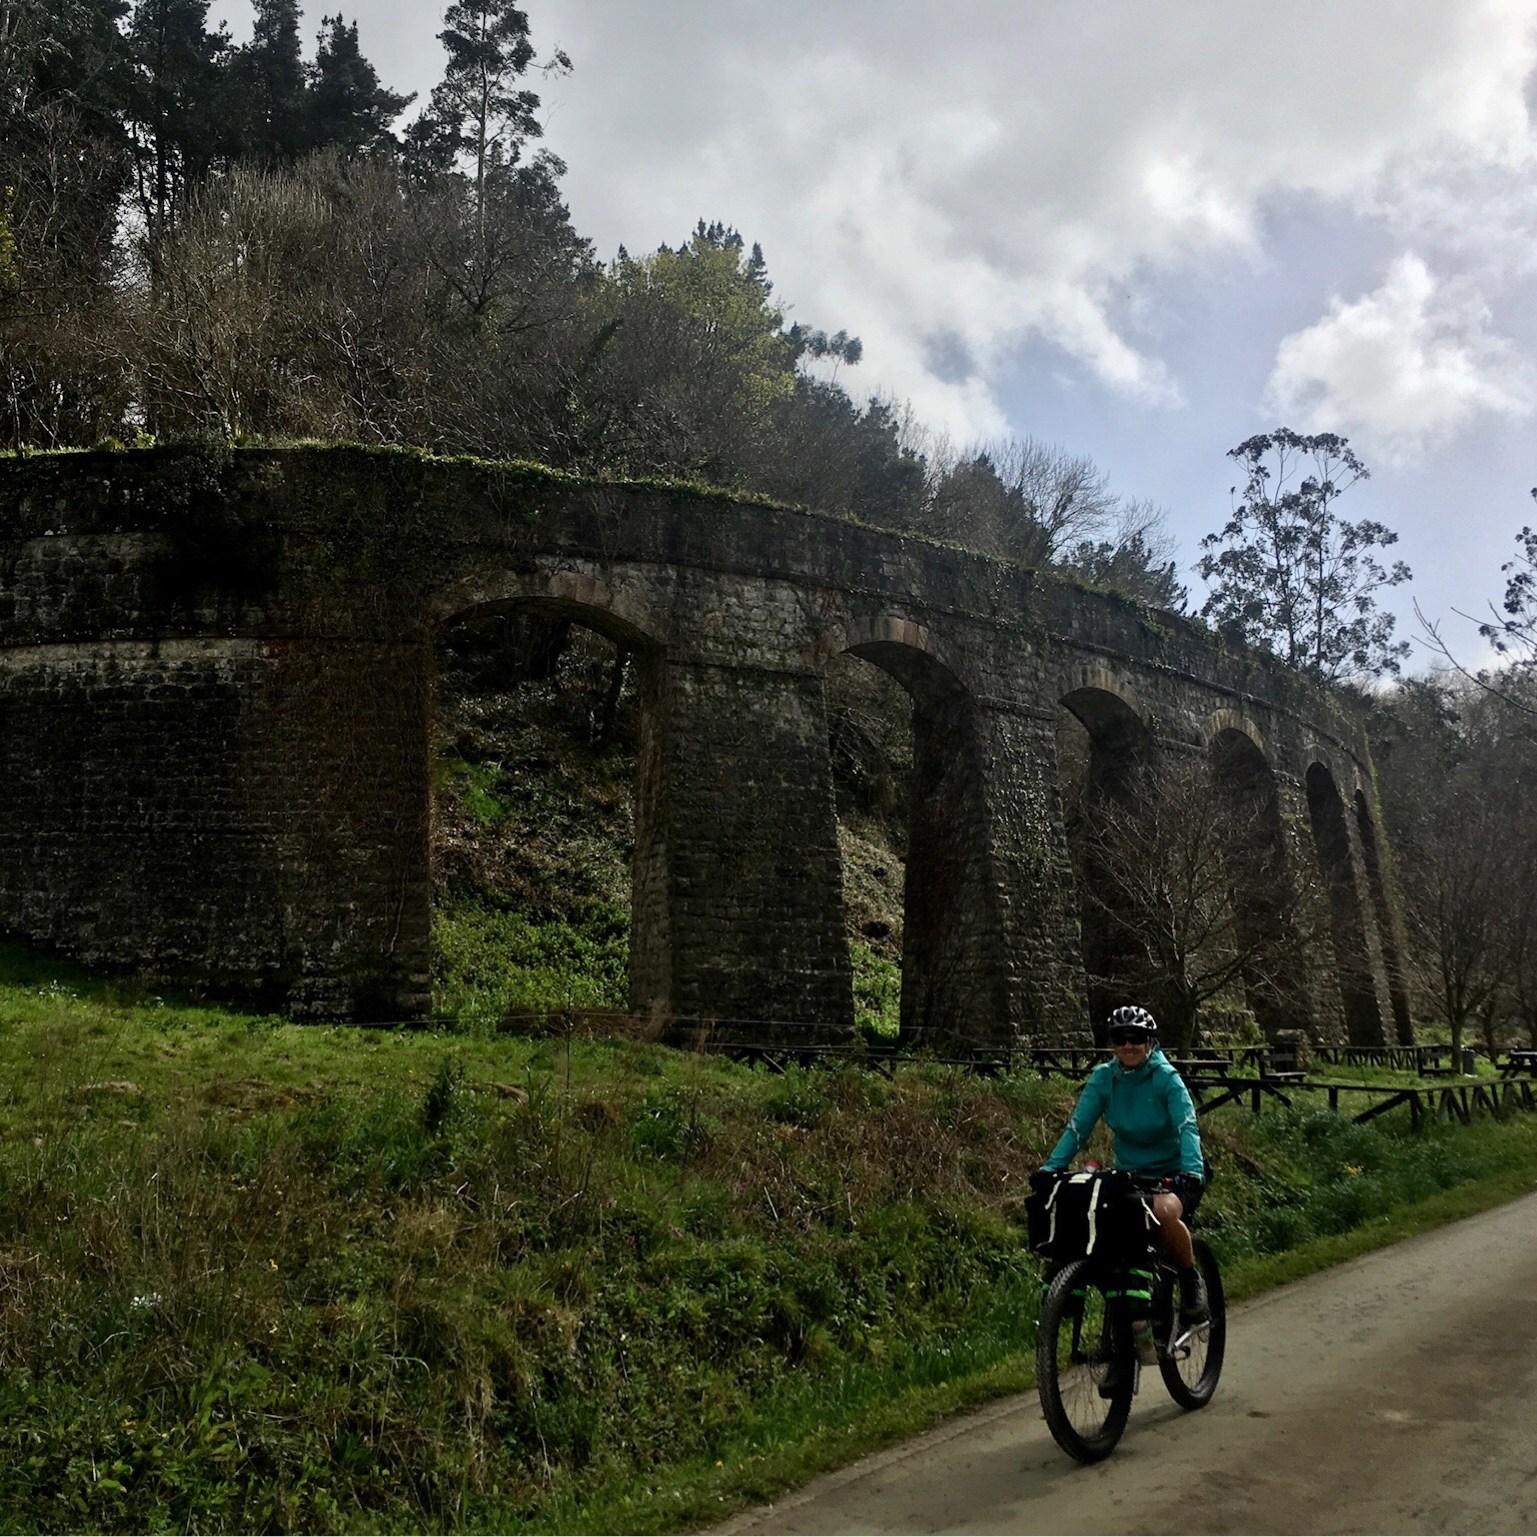 Cycling past an old aqueduct near Santander in Spain